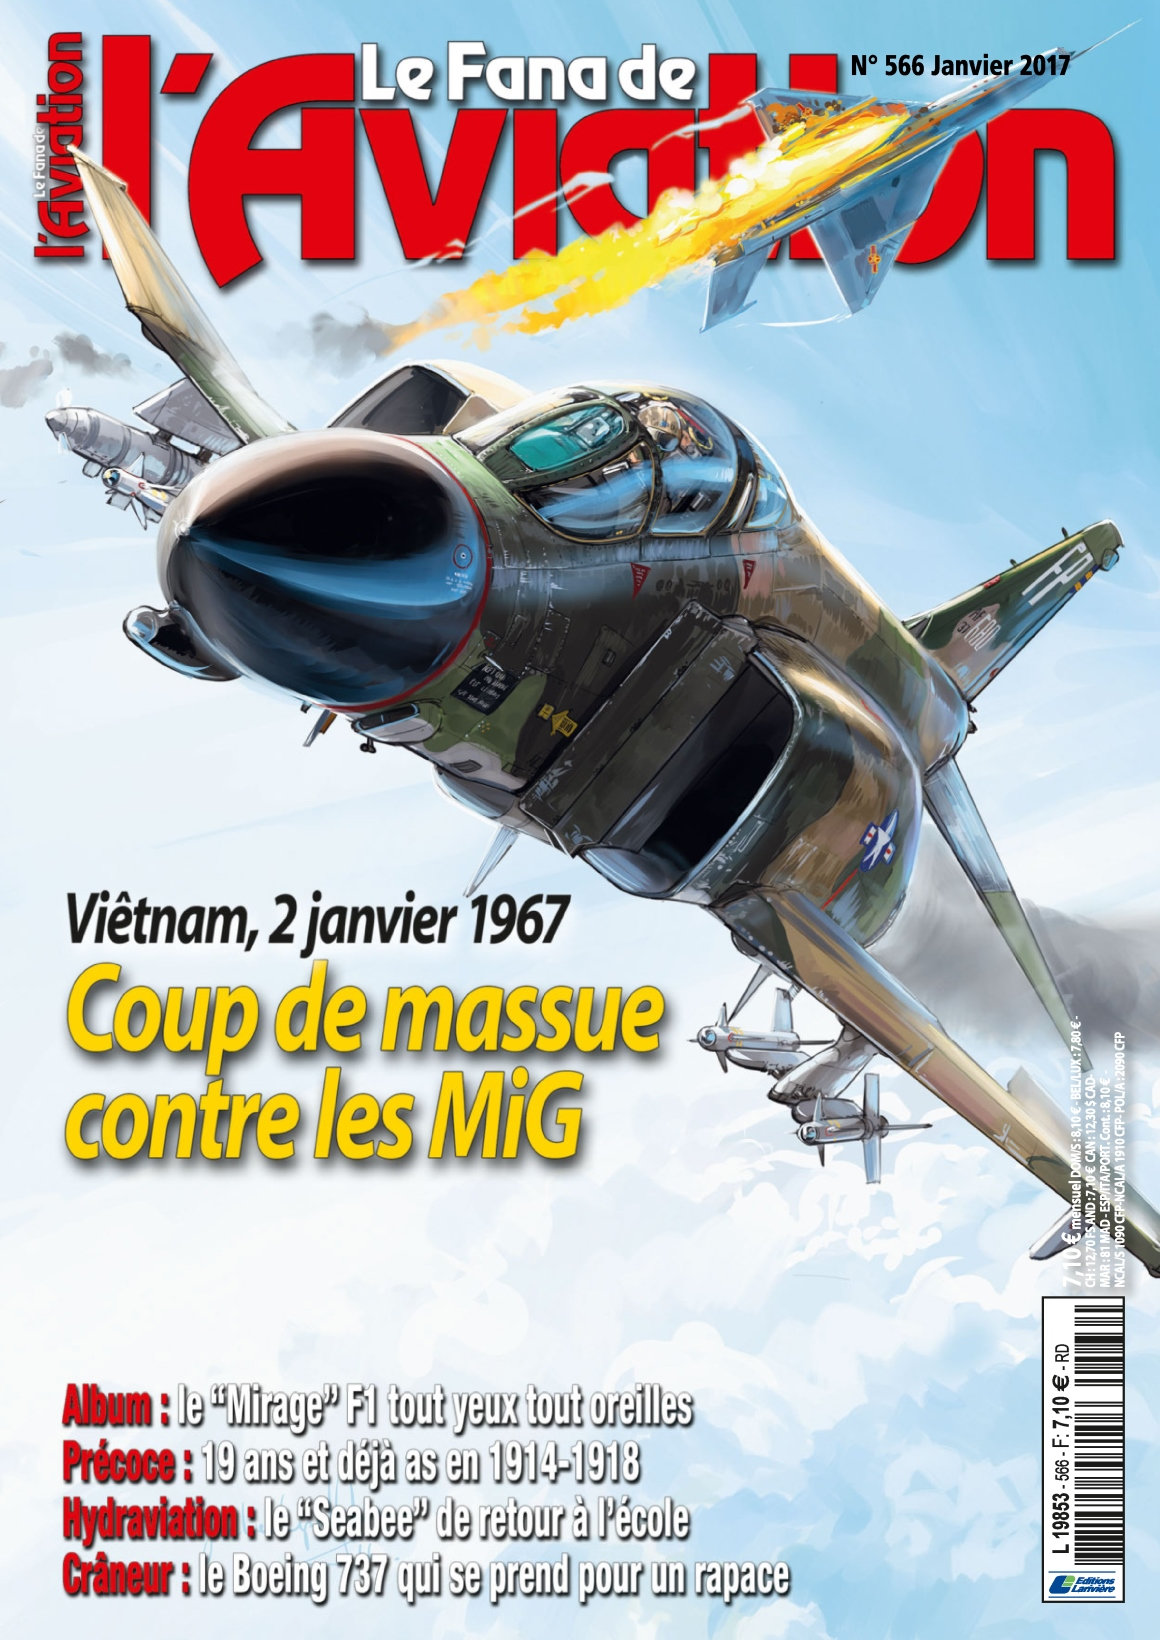 Le Fana de l'Aviation N°566 - Janvier 2017